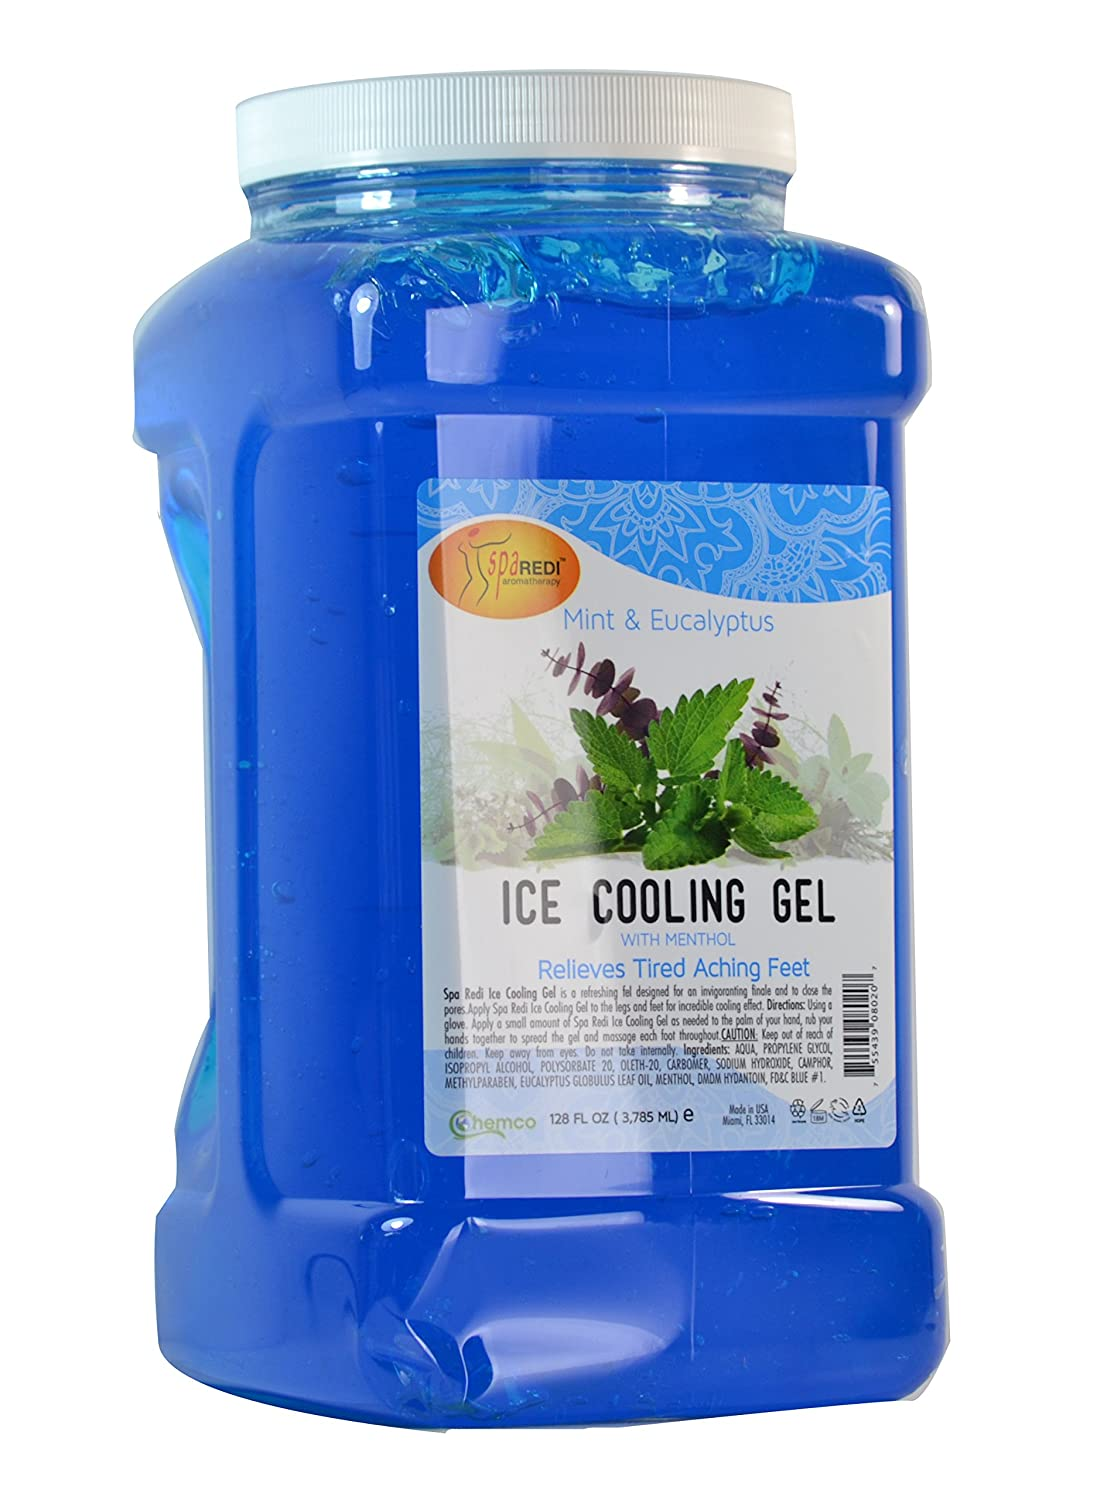 Spa Redi Ice Cooling Gel (1 Gallon - Mint & Eucalyptus)